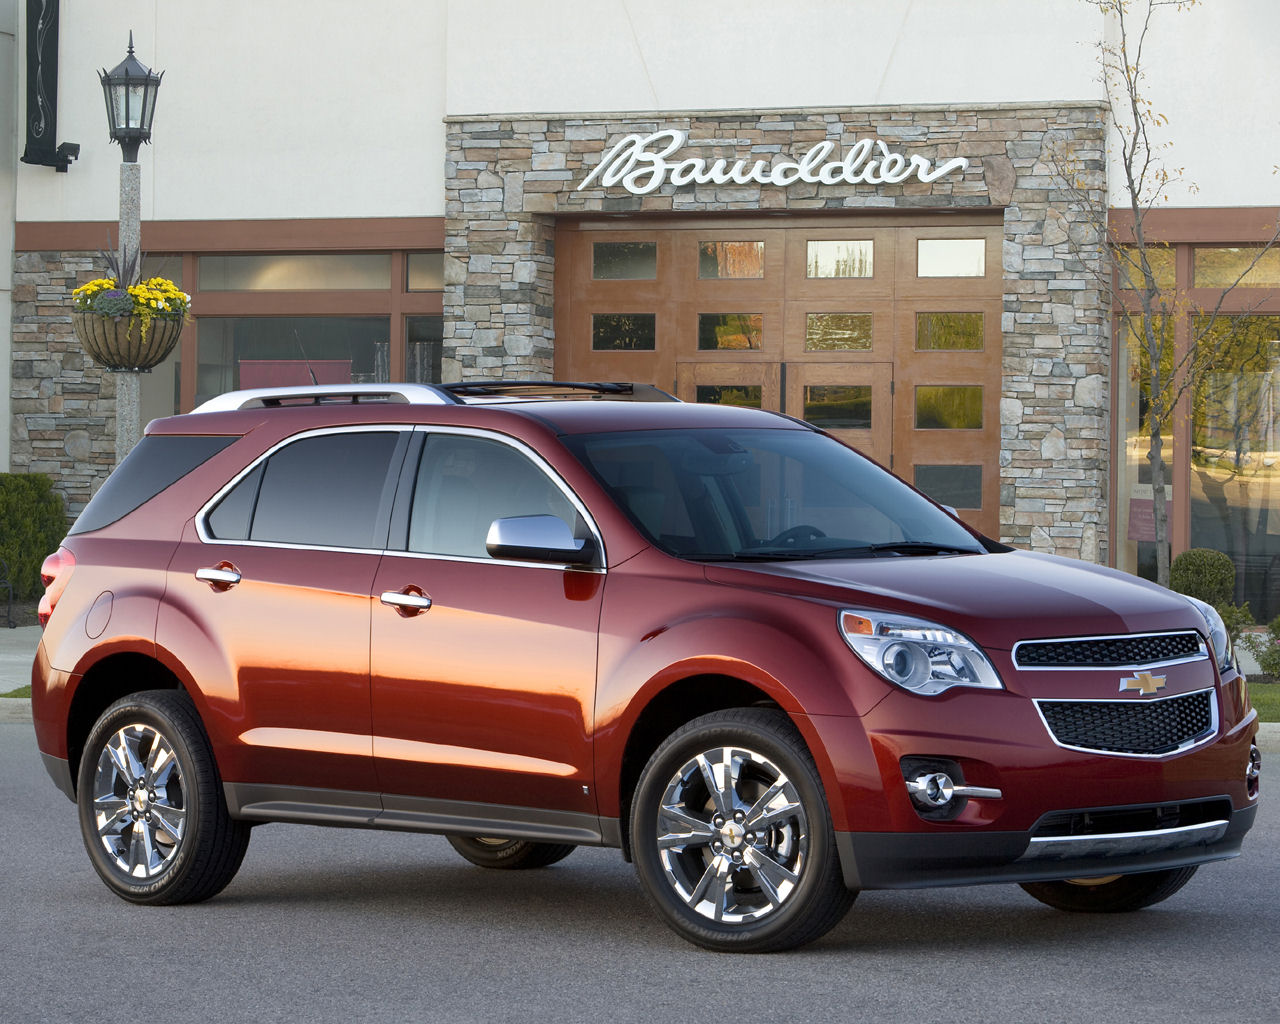 Featured Image of 2012 Chevrolet Equinox Price And Review